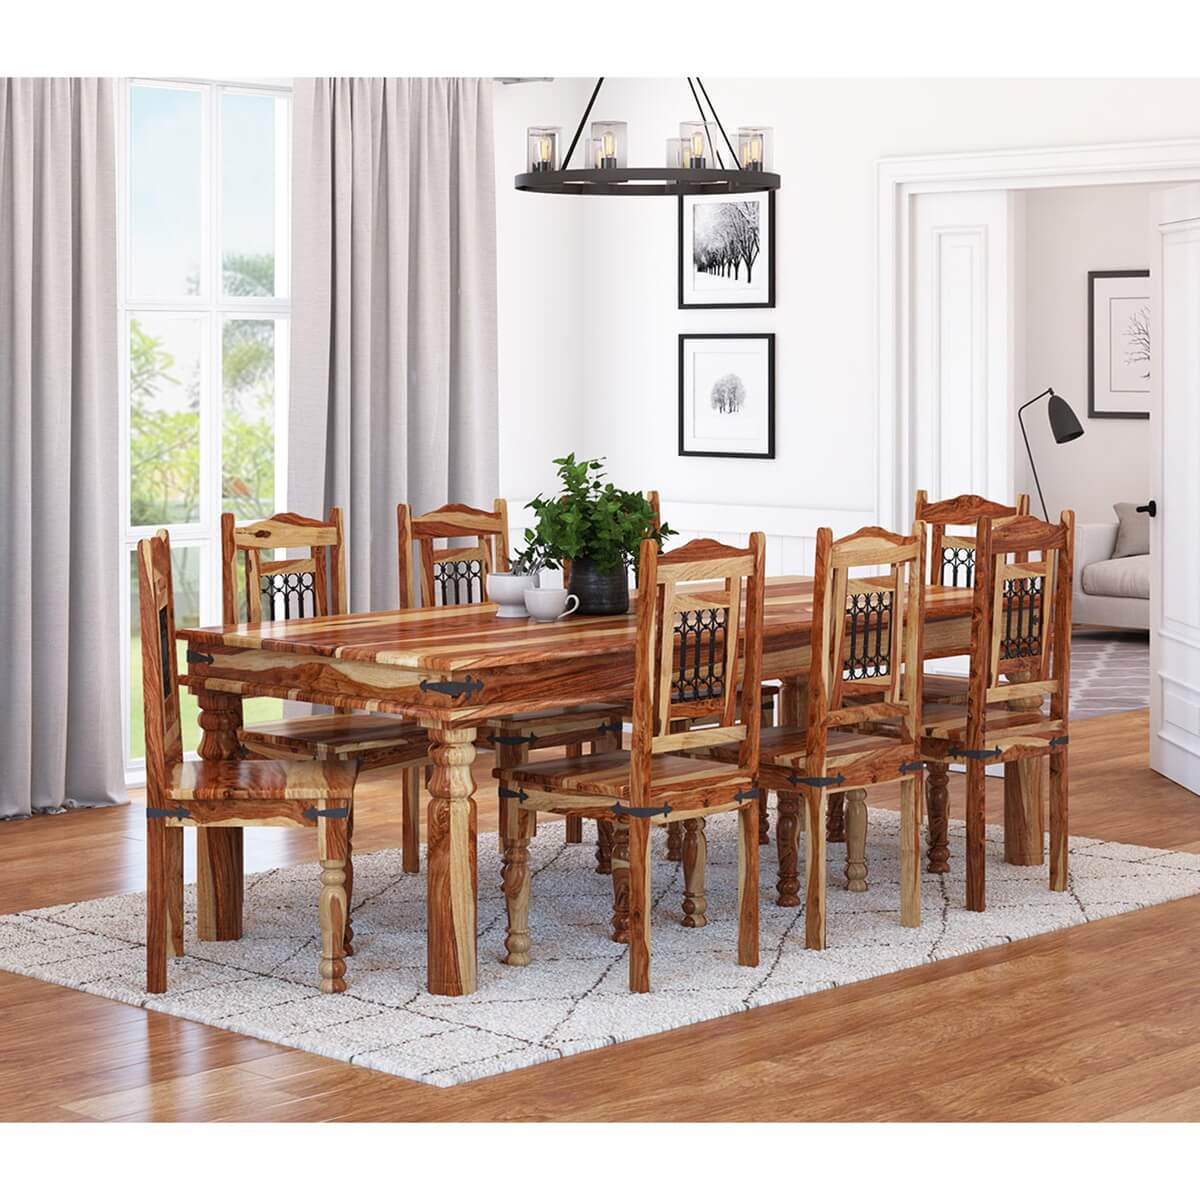 Dallas classic solid wood rustic dining room table and chair set Dining room furniture dallas